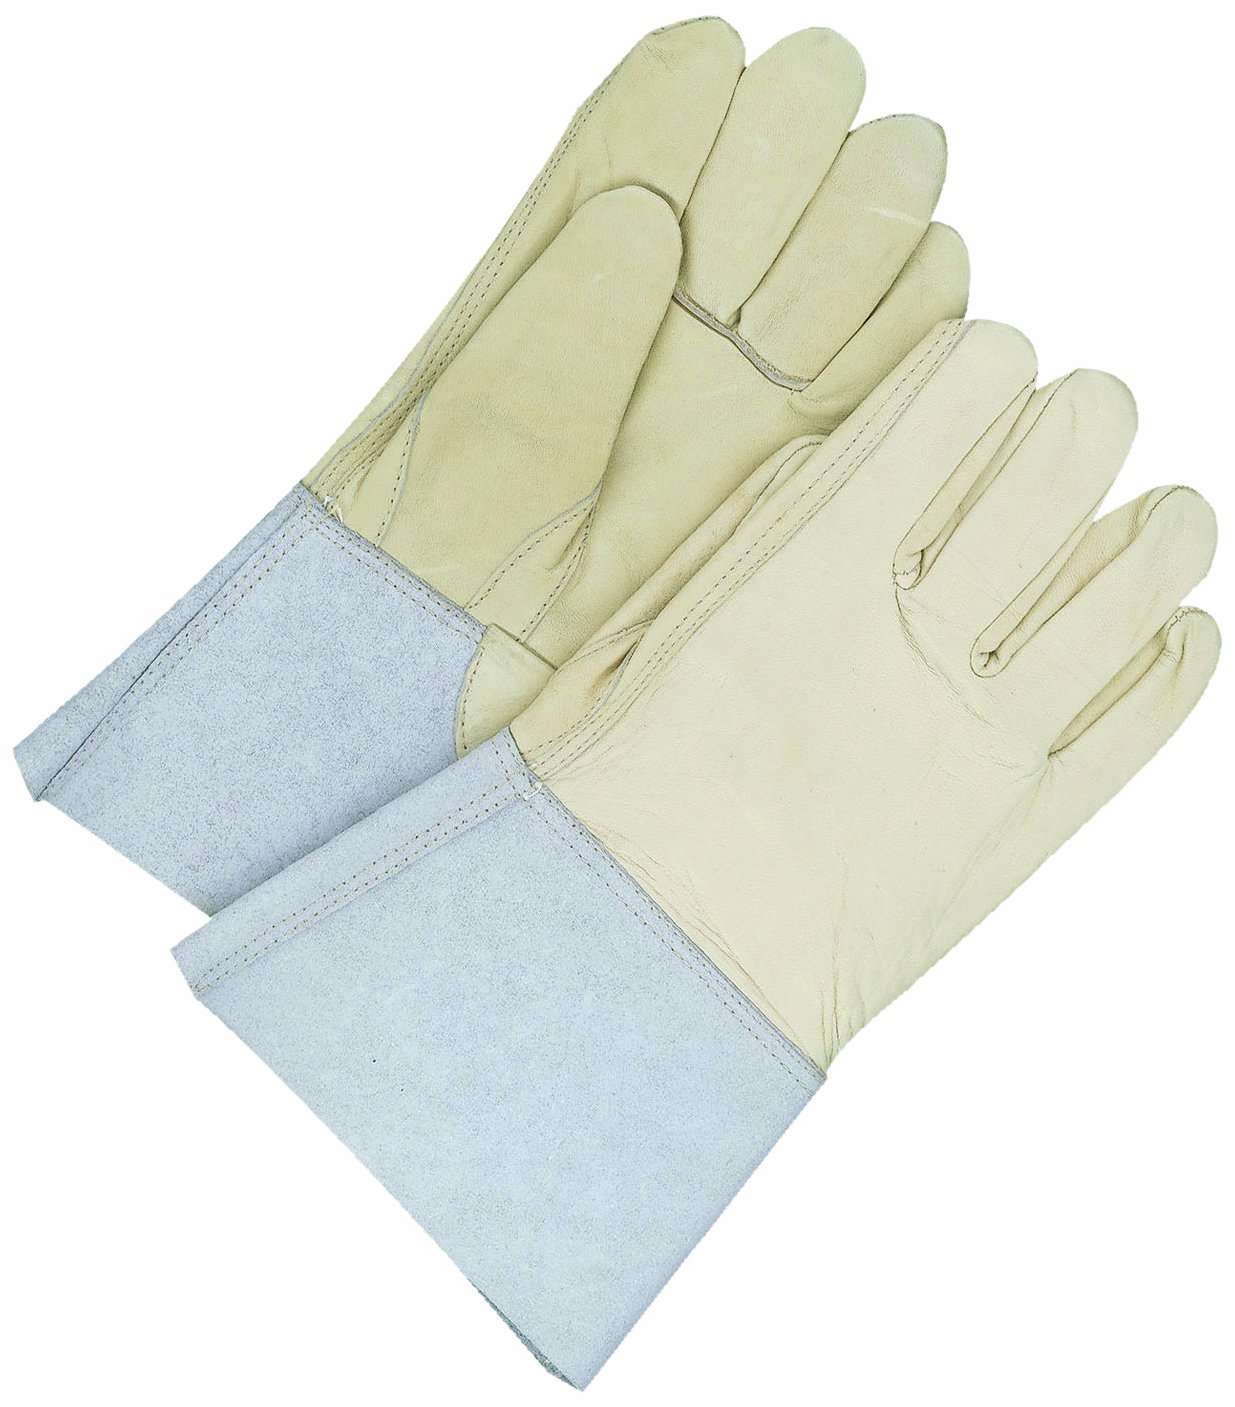 X-Large BDG 60-1-1274-12 Leather Welding Glove with Gauntlet Cuff